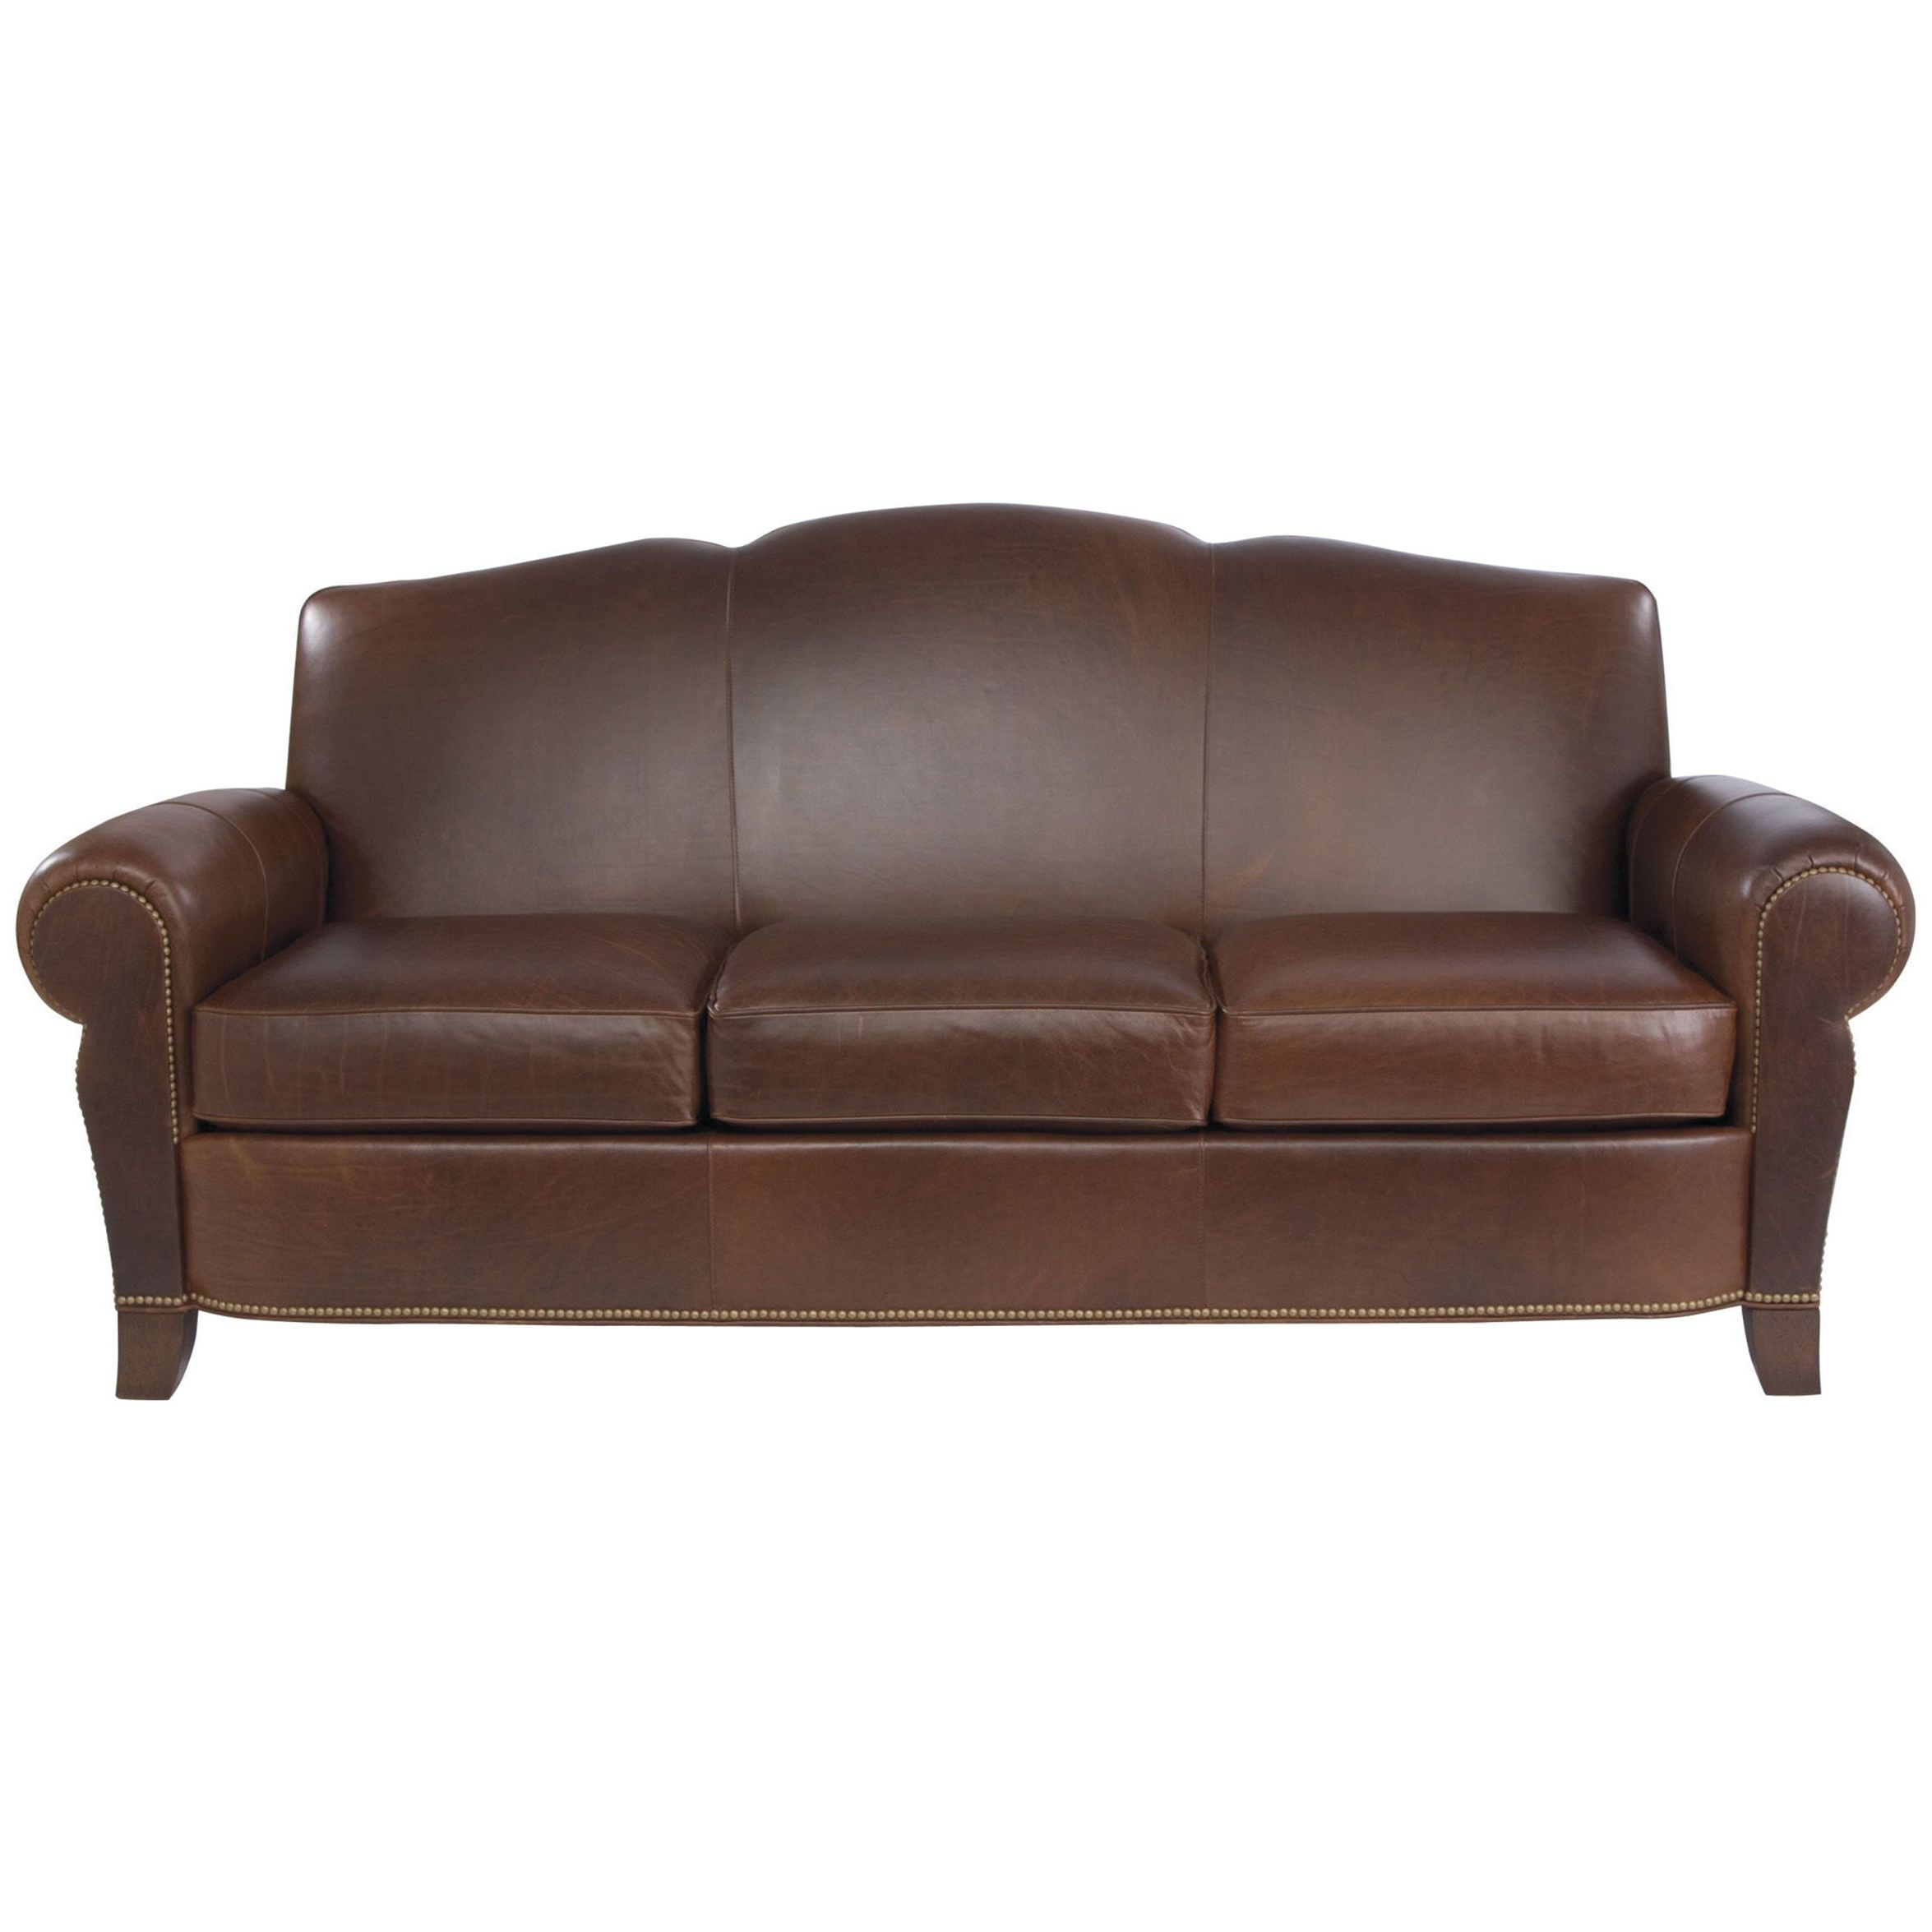 Famous Paloma Three Cushion Leather Sofa – Ethan Allen Us Can Be Pertaining To Customized Sofas (View 16 of 20)